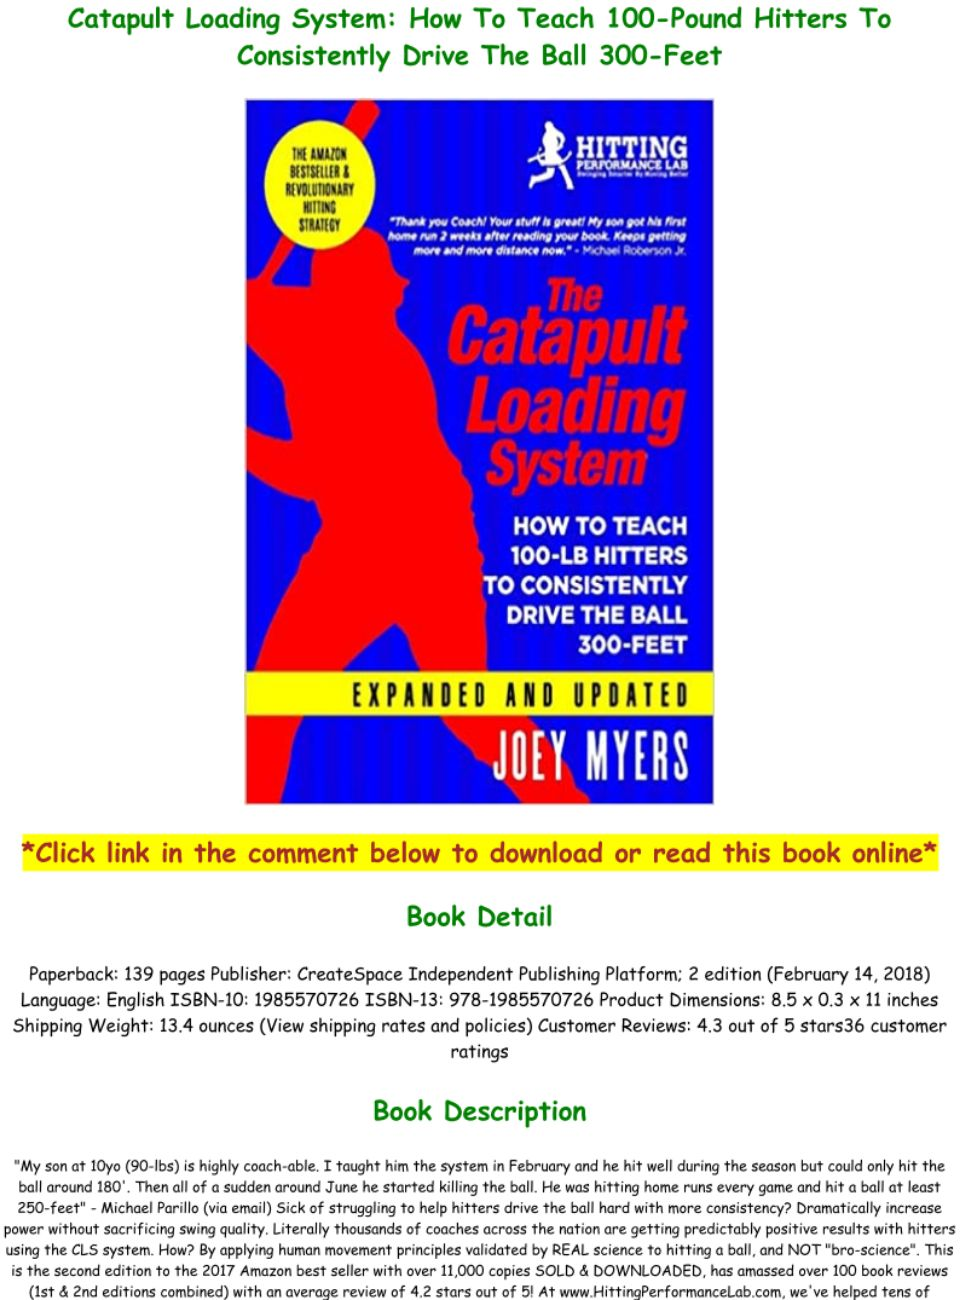 Catapult Loading System How To Teach 100-Pound Hitters To Consistently Drive The Ball 300-Feet